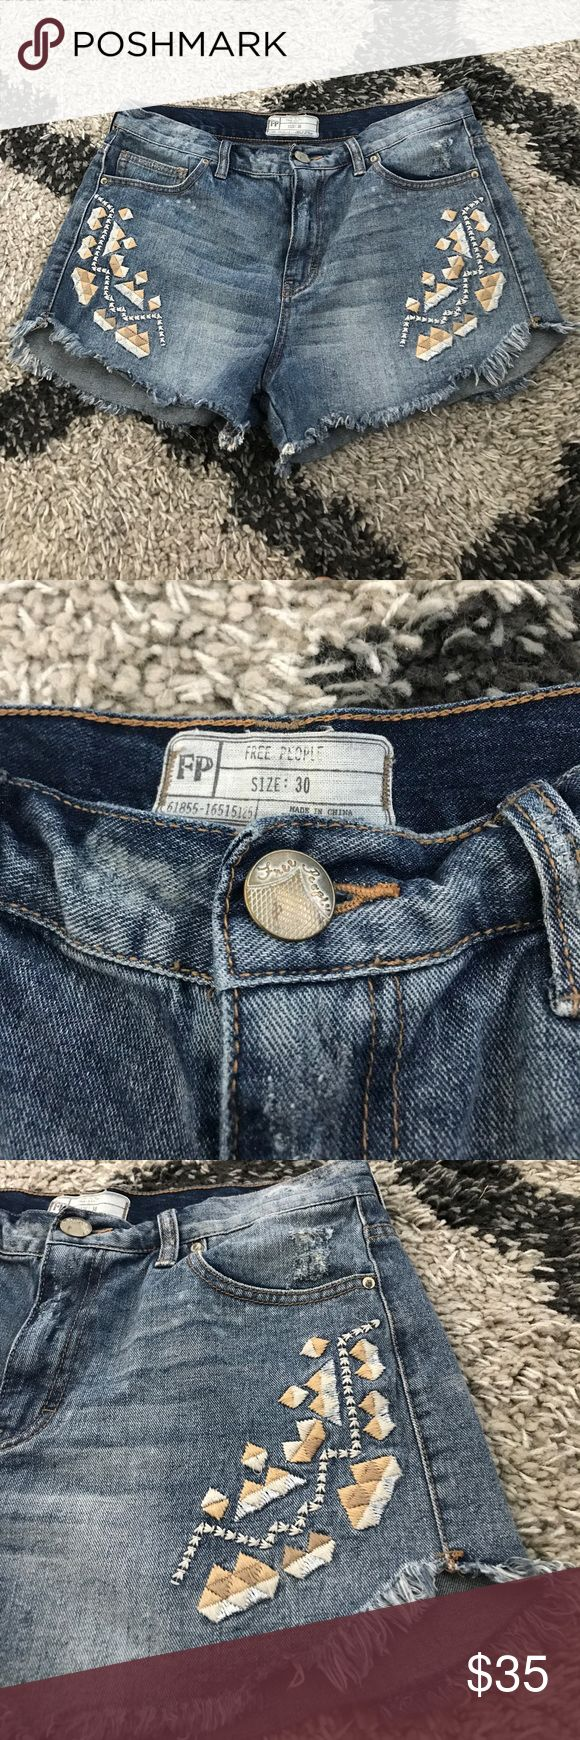 Women's Free People Jean Shorts Women's Free People jean shorts. Size 30. Great condition, comfy and cute. Free People Shorts Jean Shorts